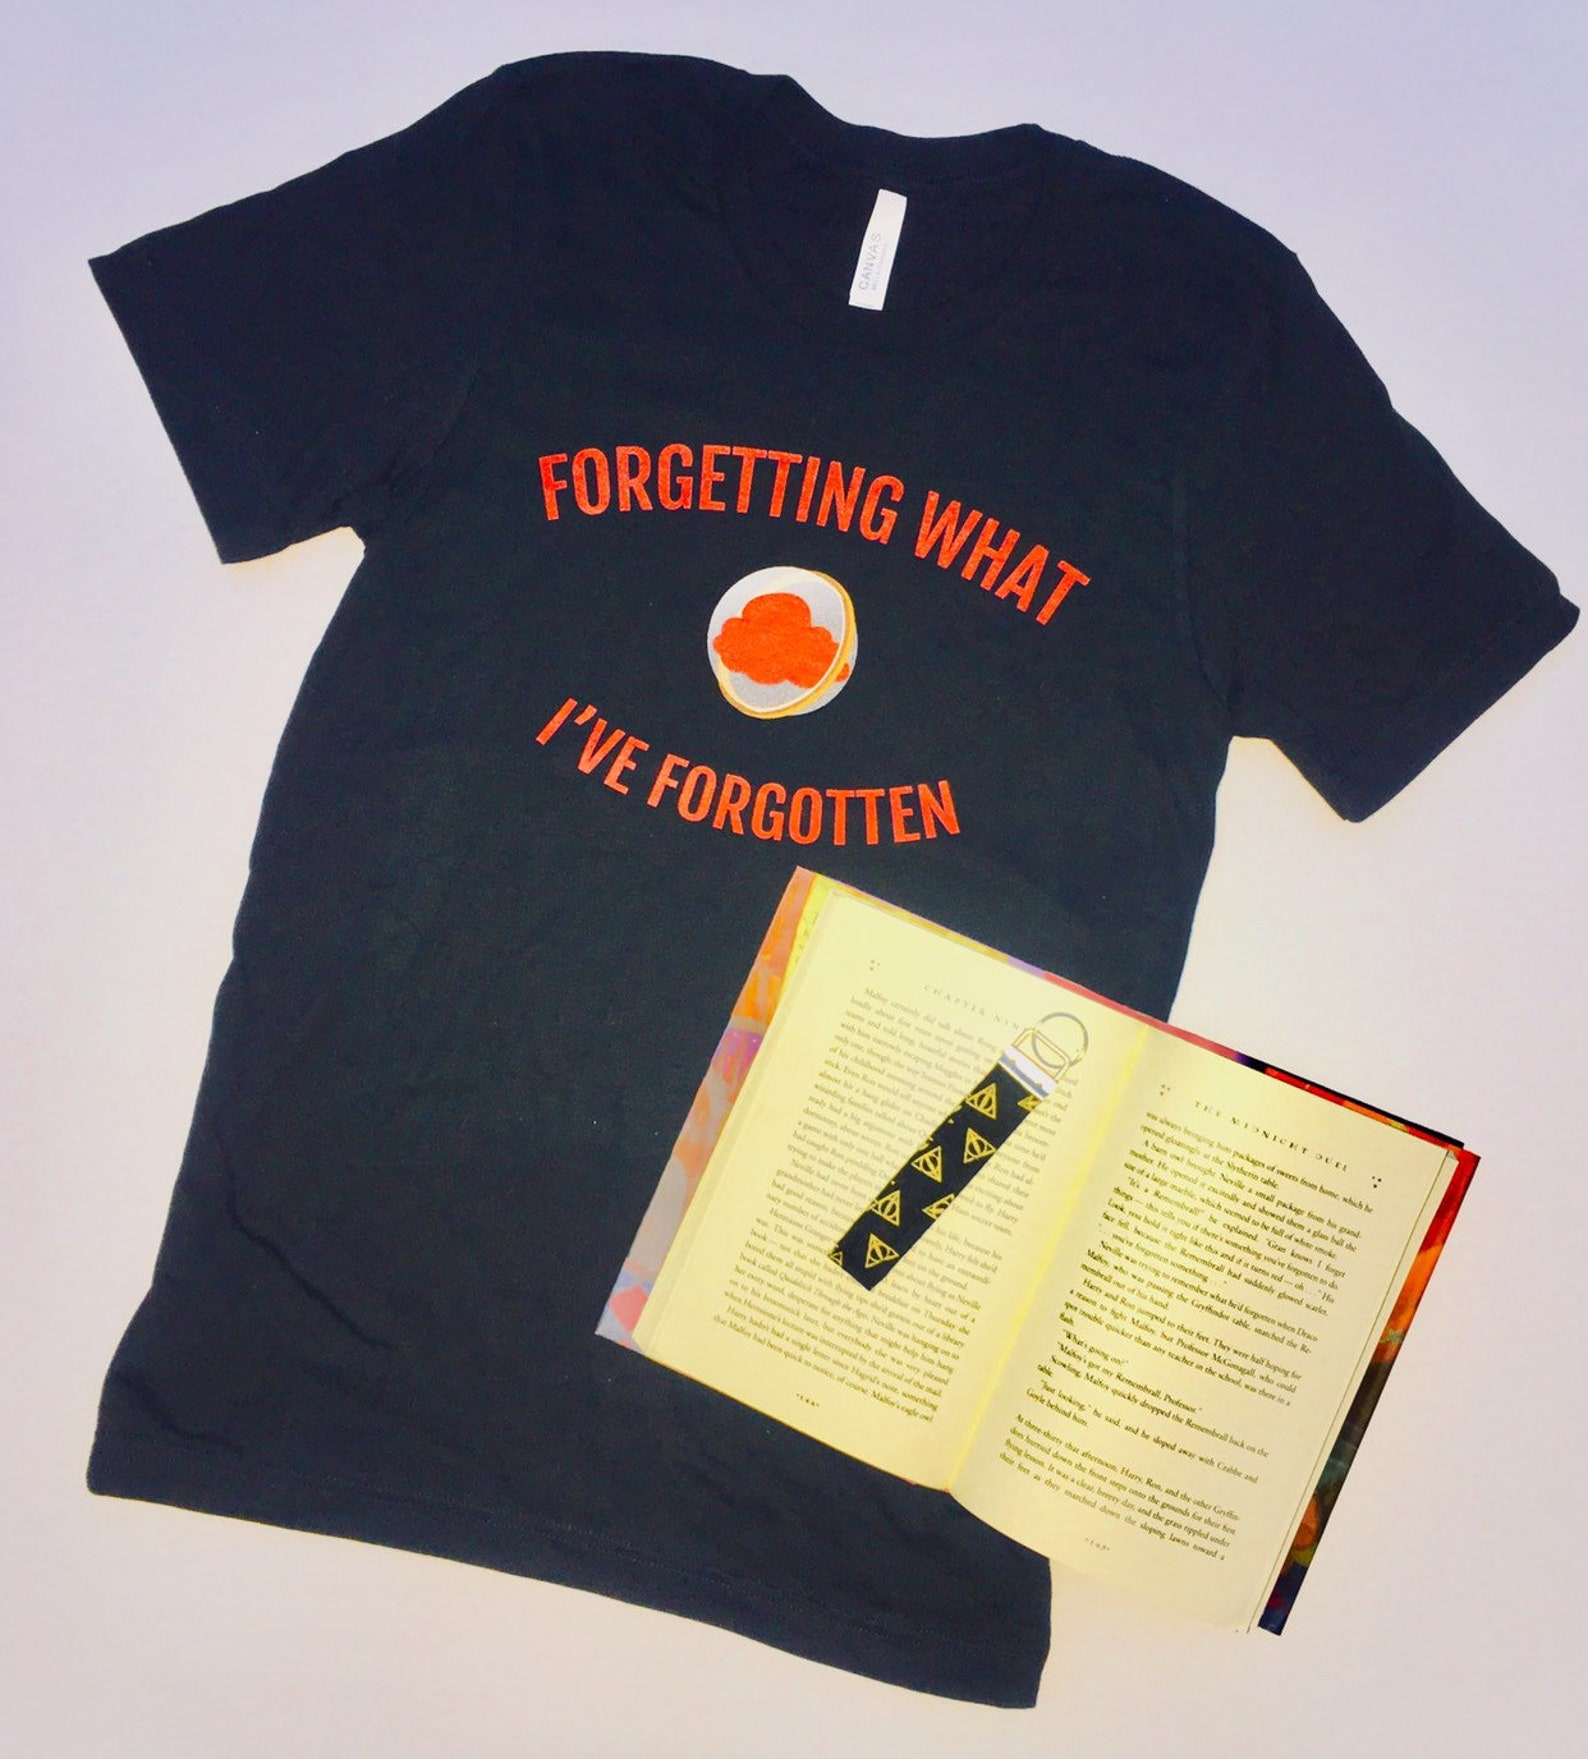 Harry Potter T-shirt with rememberall saying forgetting what I've forgotten